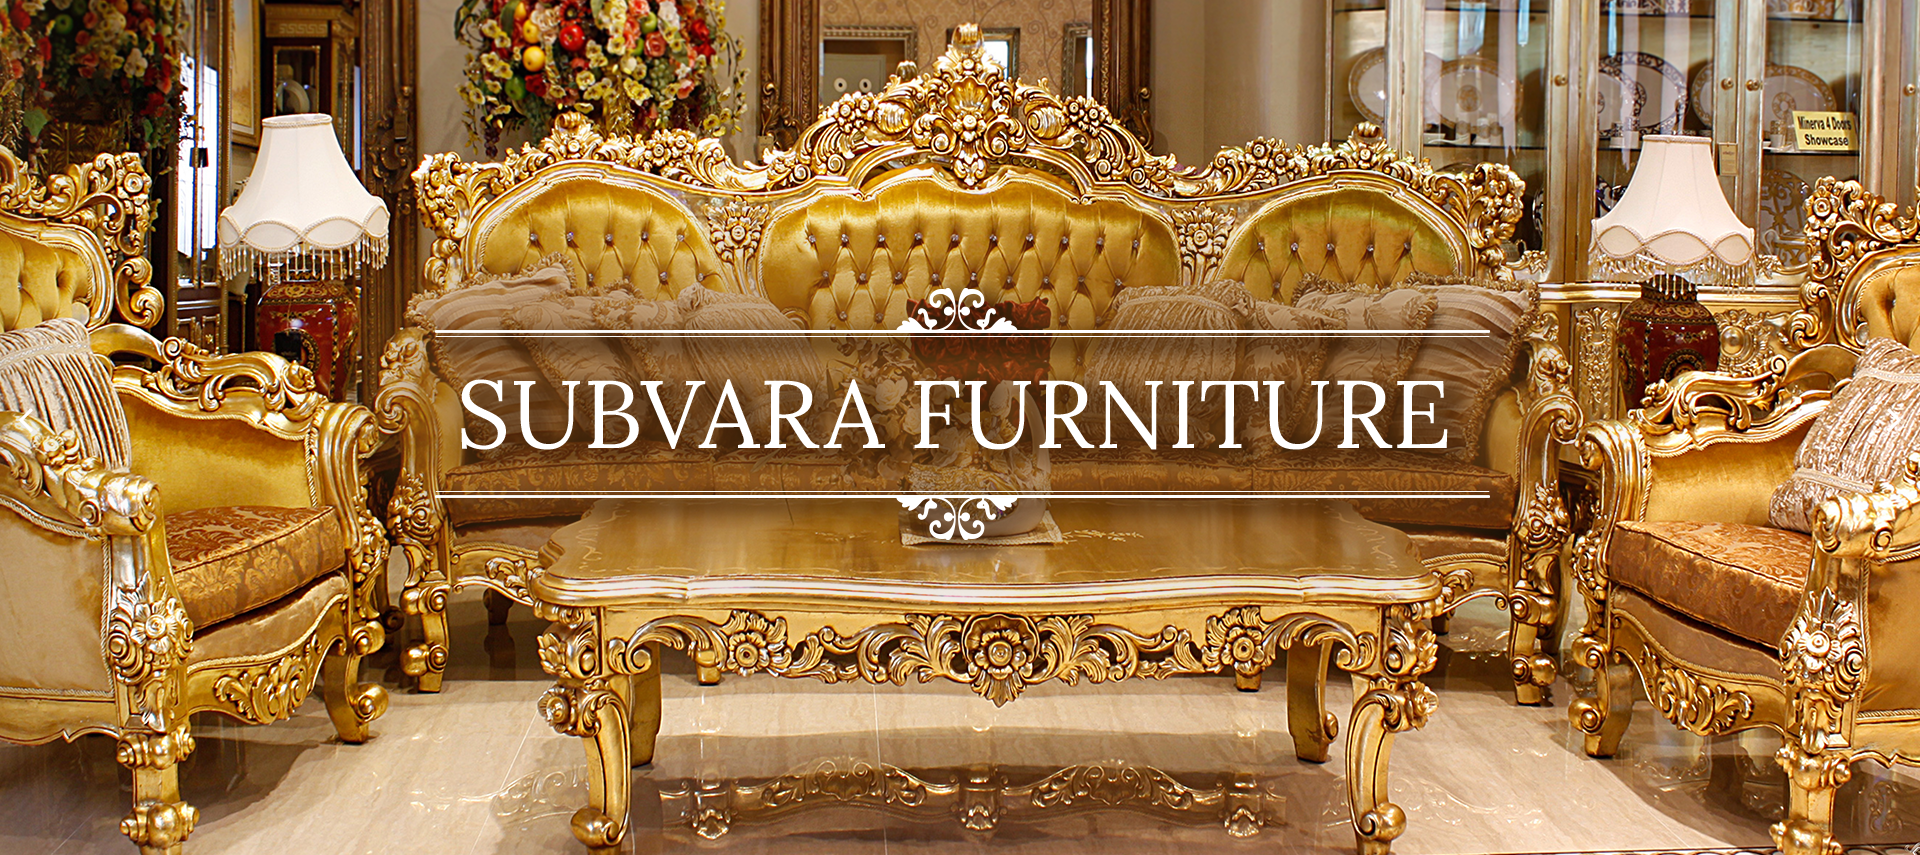 Subvara Has Been Famous For Being One Of A Major Luxurious Furniture In Thailand We Expert Selecting Premium Quality Furnitures Lighting